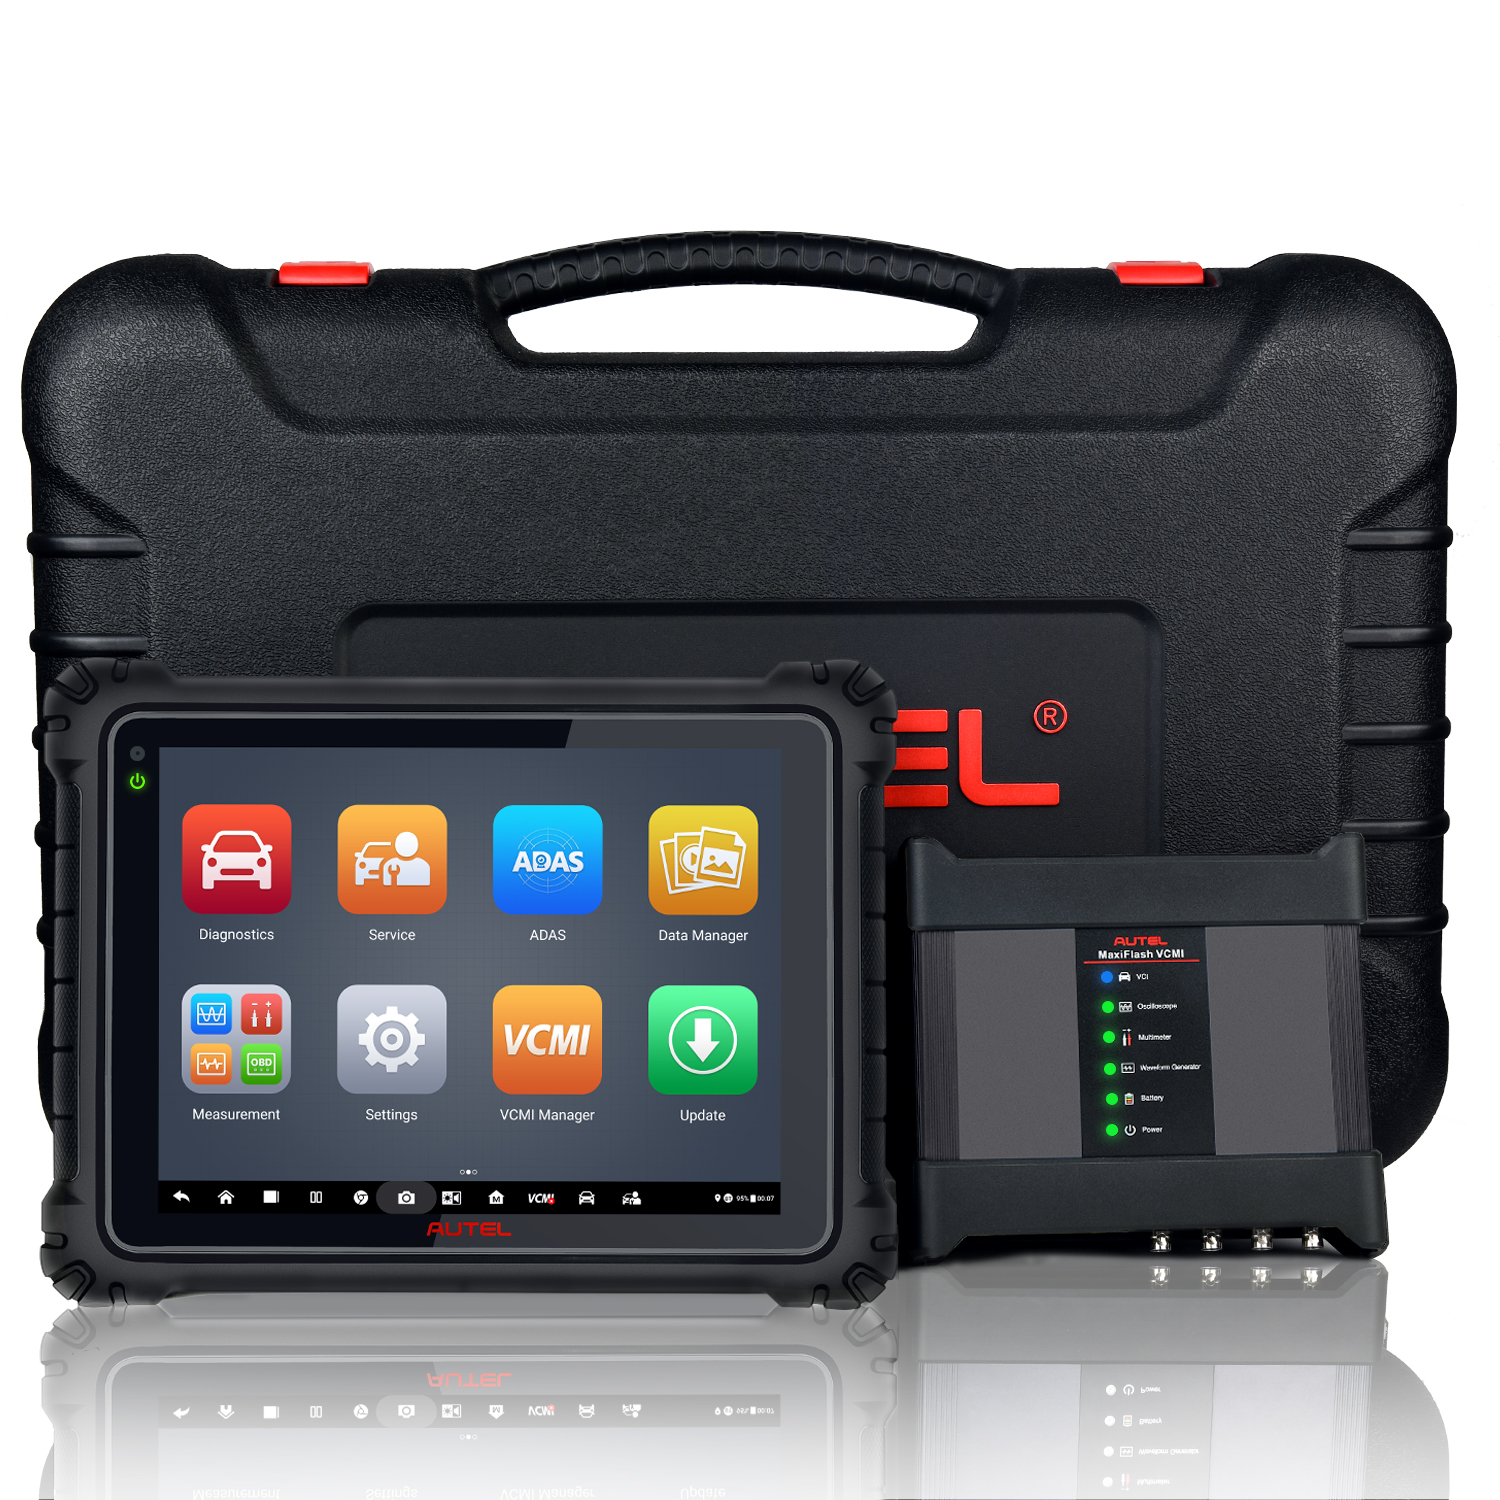 Autel Maxisys Ultra 2021 Autel Ms919 Ms909 Ultra Auto Diagnostic Car  Scanner Tool With Advanced Vcmi J2534 - Buy Autel Maxisys Ultra,Car  Diagnostic Tools,Autel Maxisys Ultra 2021 Product on Alibaba.com